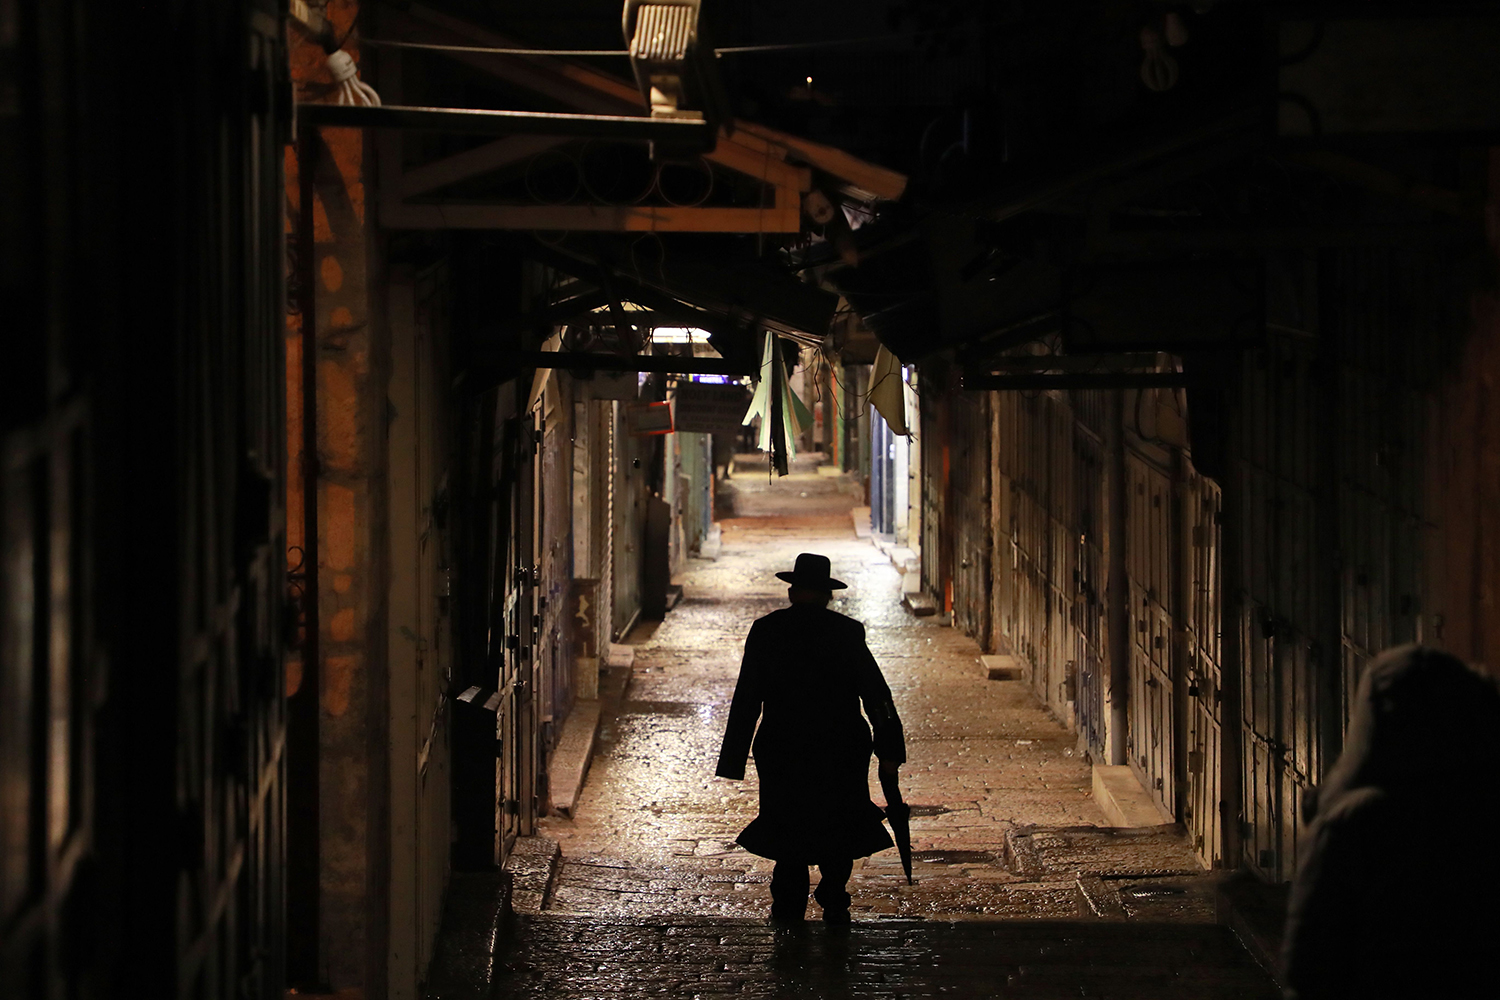 An Ultra-Orthodox Jewish man is silhouetted as he walks on an Old Jerusalem street on Jan. 20. LUDOVIC MARIN/AFP via Getty Images